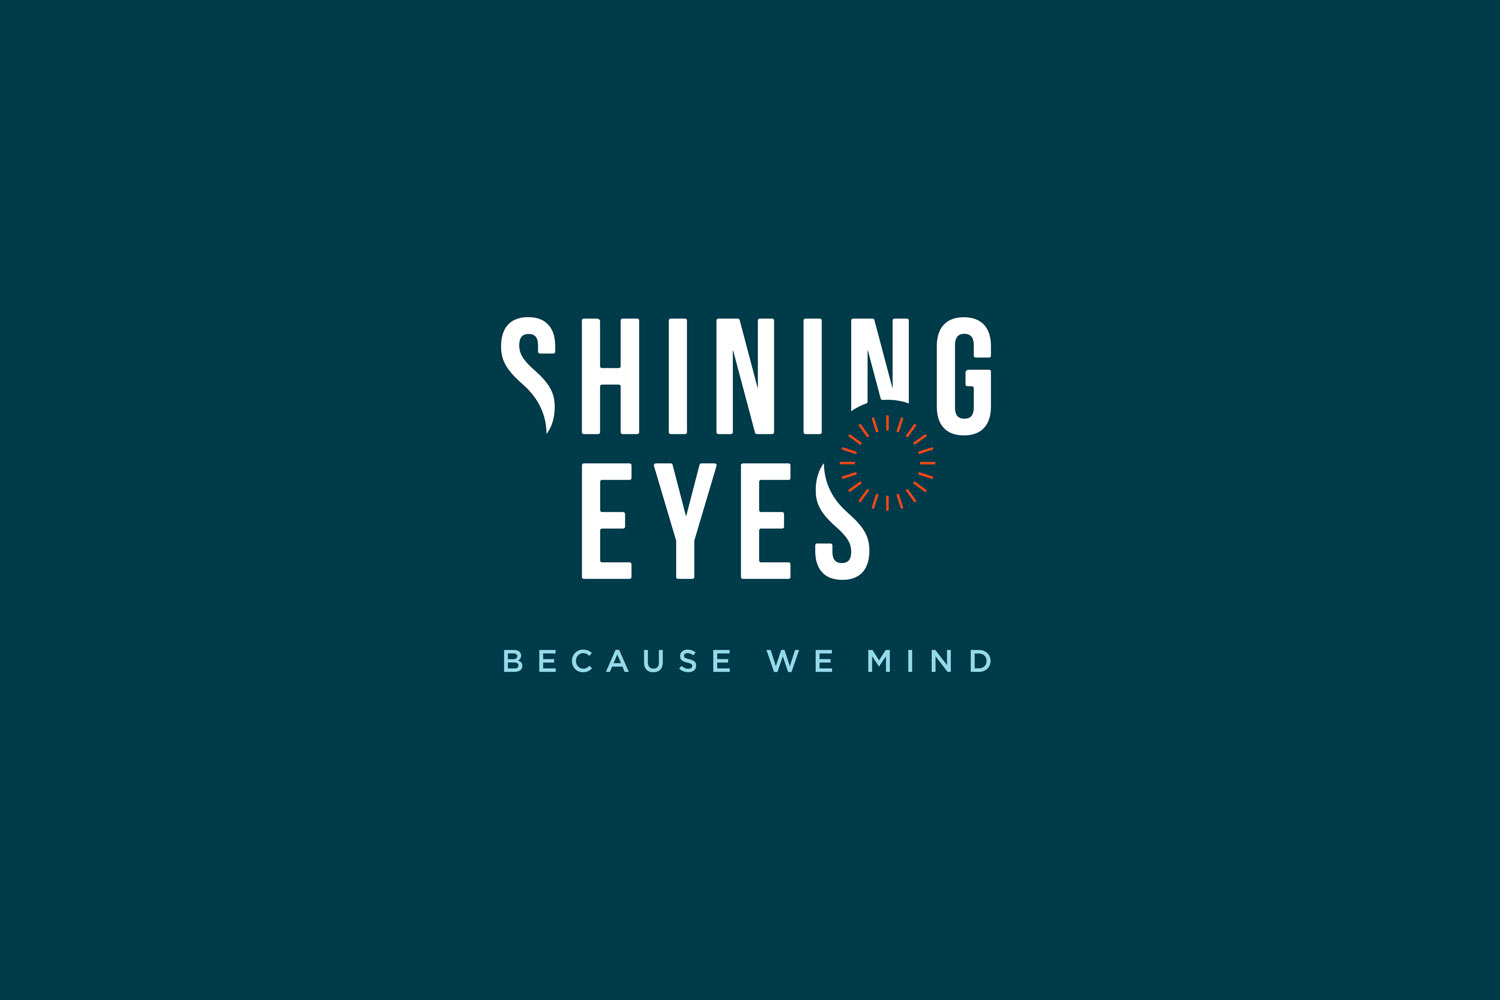 Shining Eyes - negativ version af logo